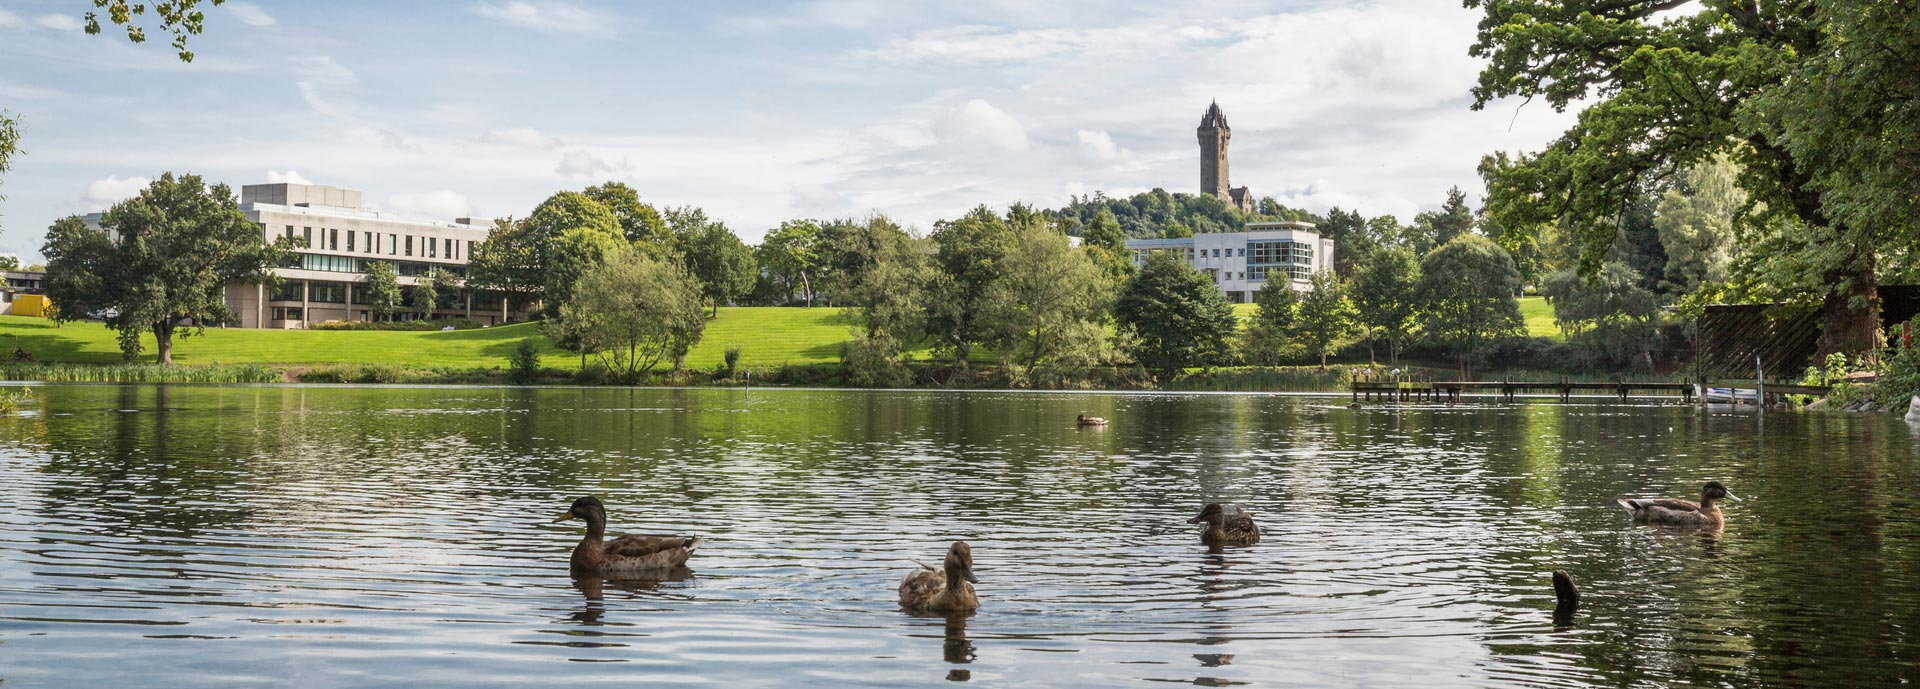 Ducks on loch with University of Stirling and Wallace Monument in background